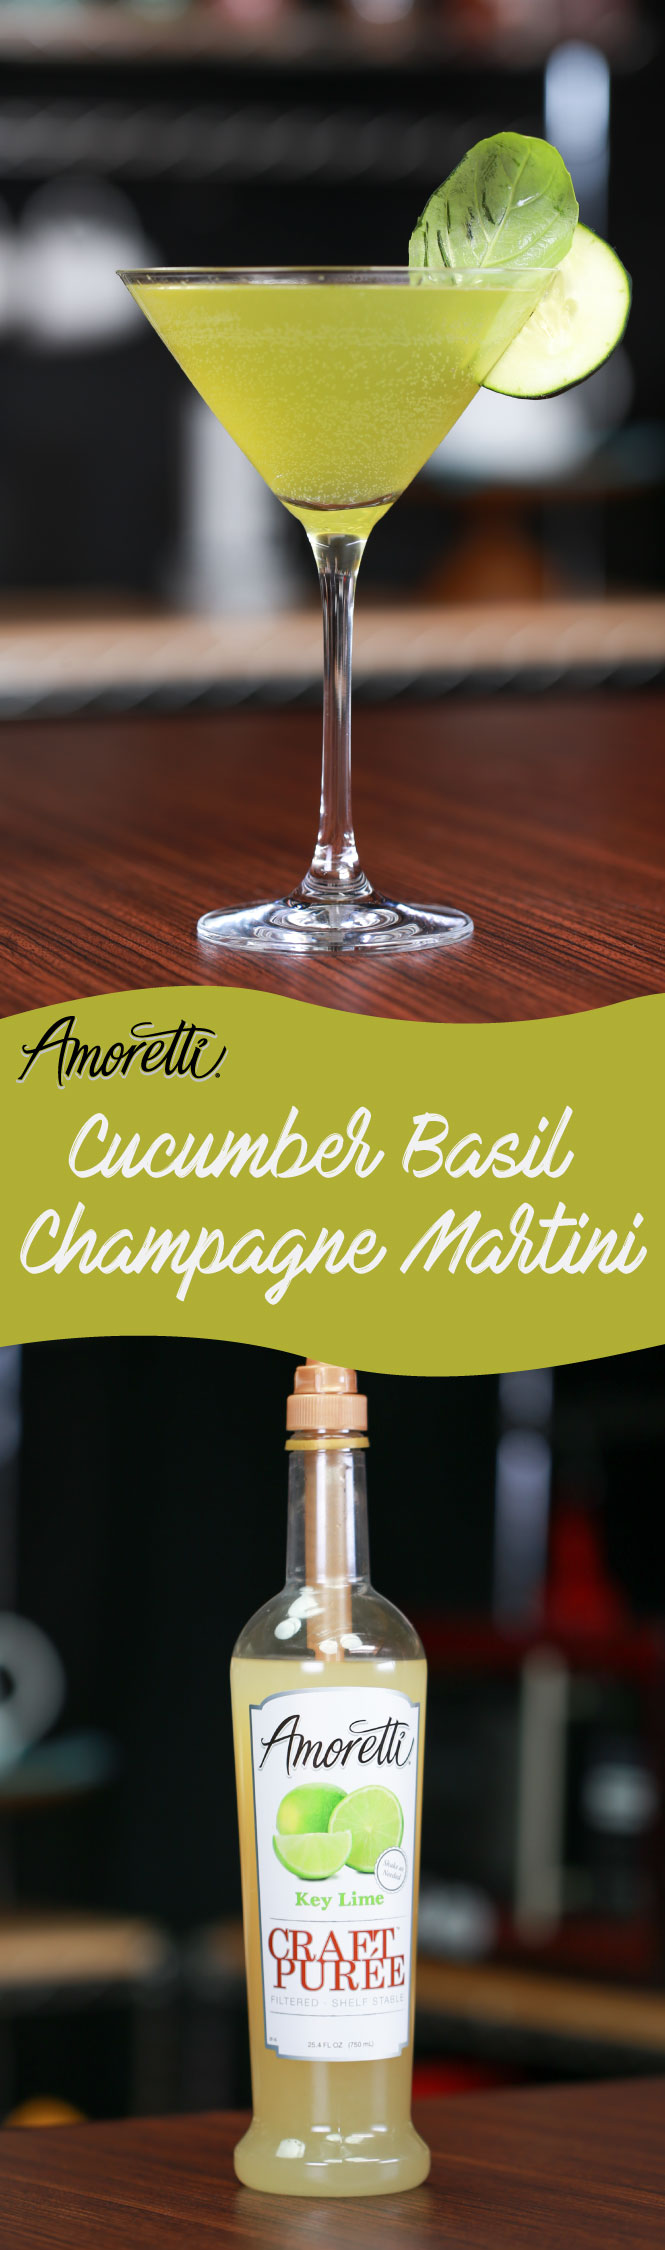 For a fun drink with tons of flavor, try a Cucumber Basil Champagne Martini!